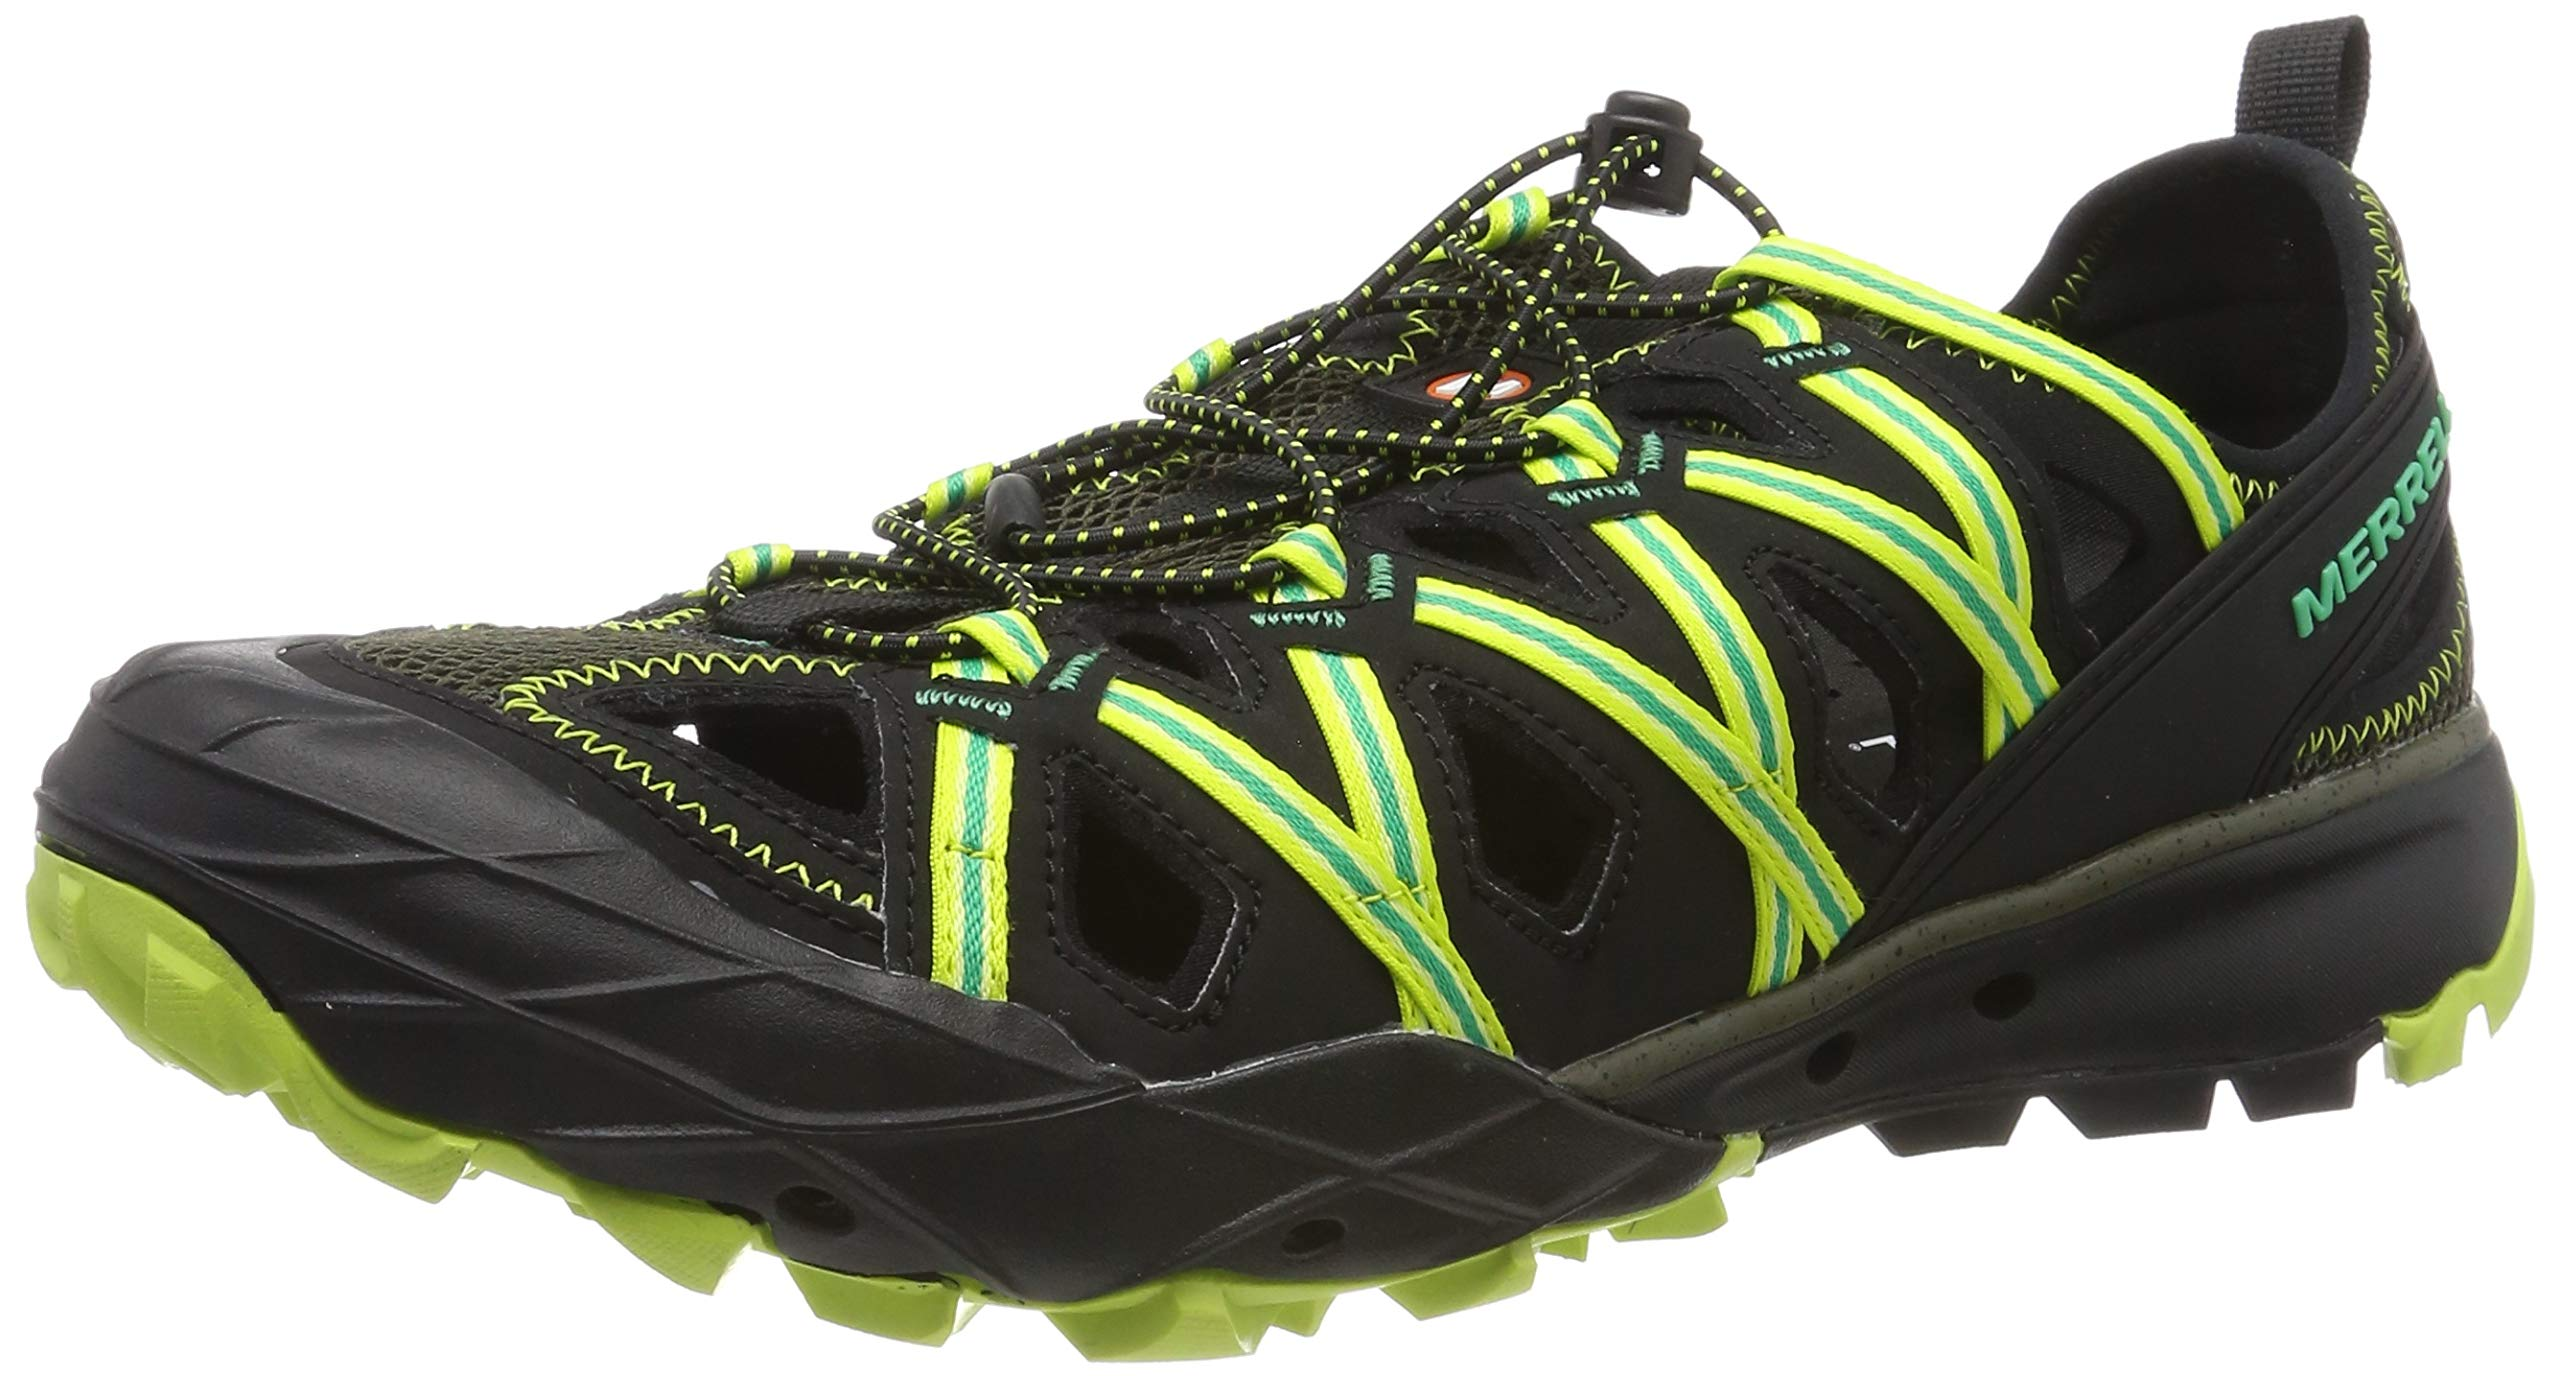 Merrell Men's Choprock Water Shoes Green Dusty Olive, 7 (41 EU)